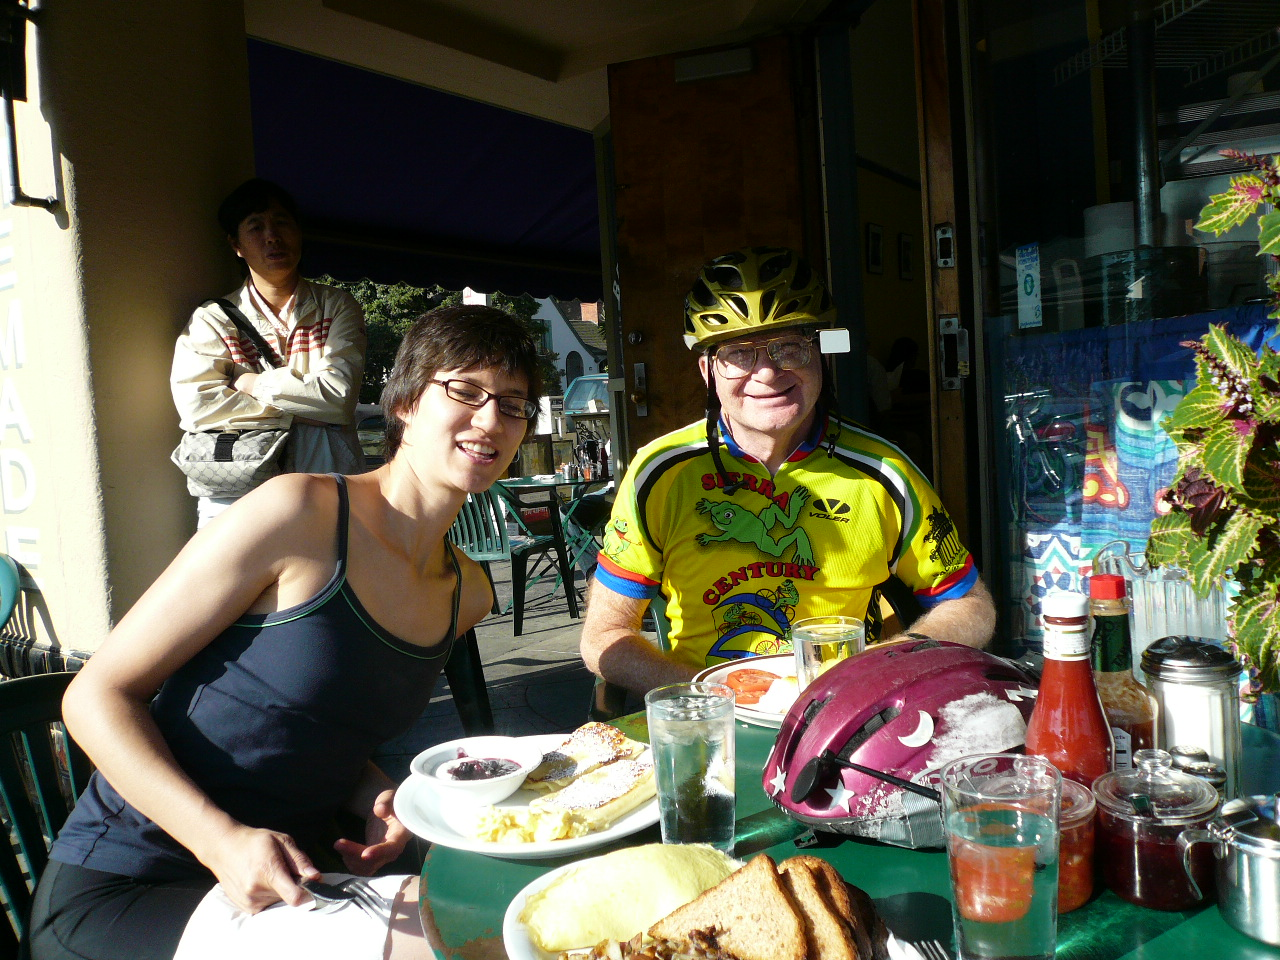 Sarah, Joe and I stopped for breakfast after biking 1 mile.  Phew, what a workout!